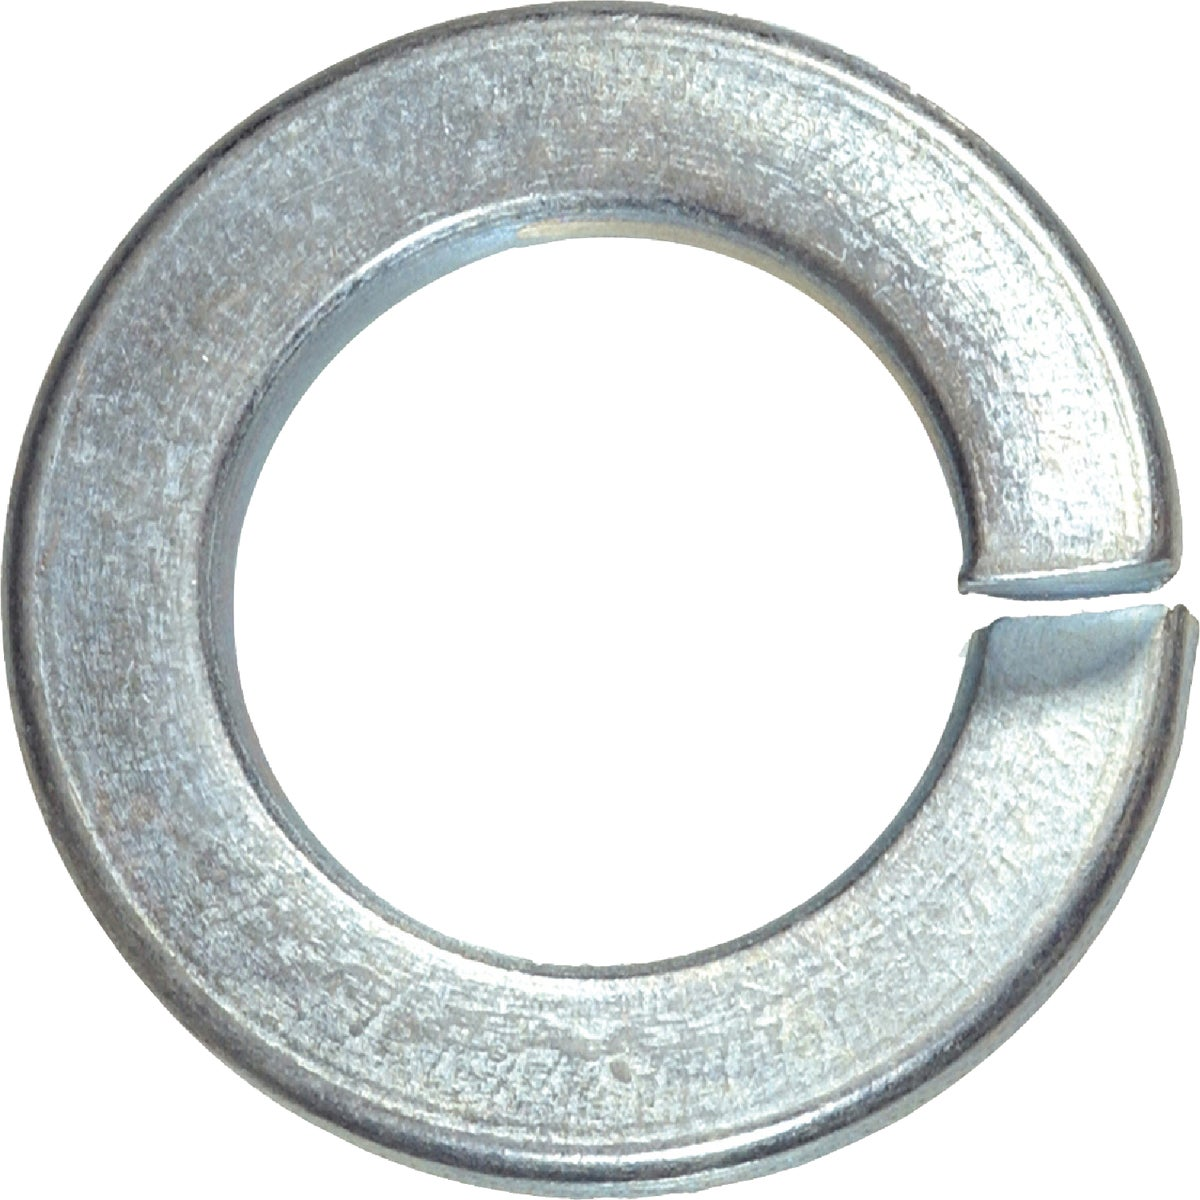 "100PC 1/4"" LOCK WASHER"